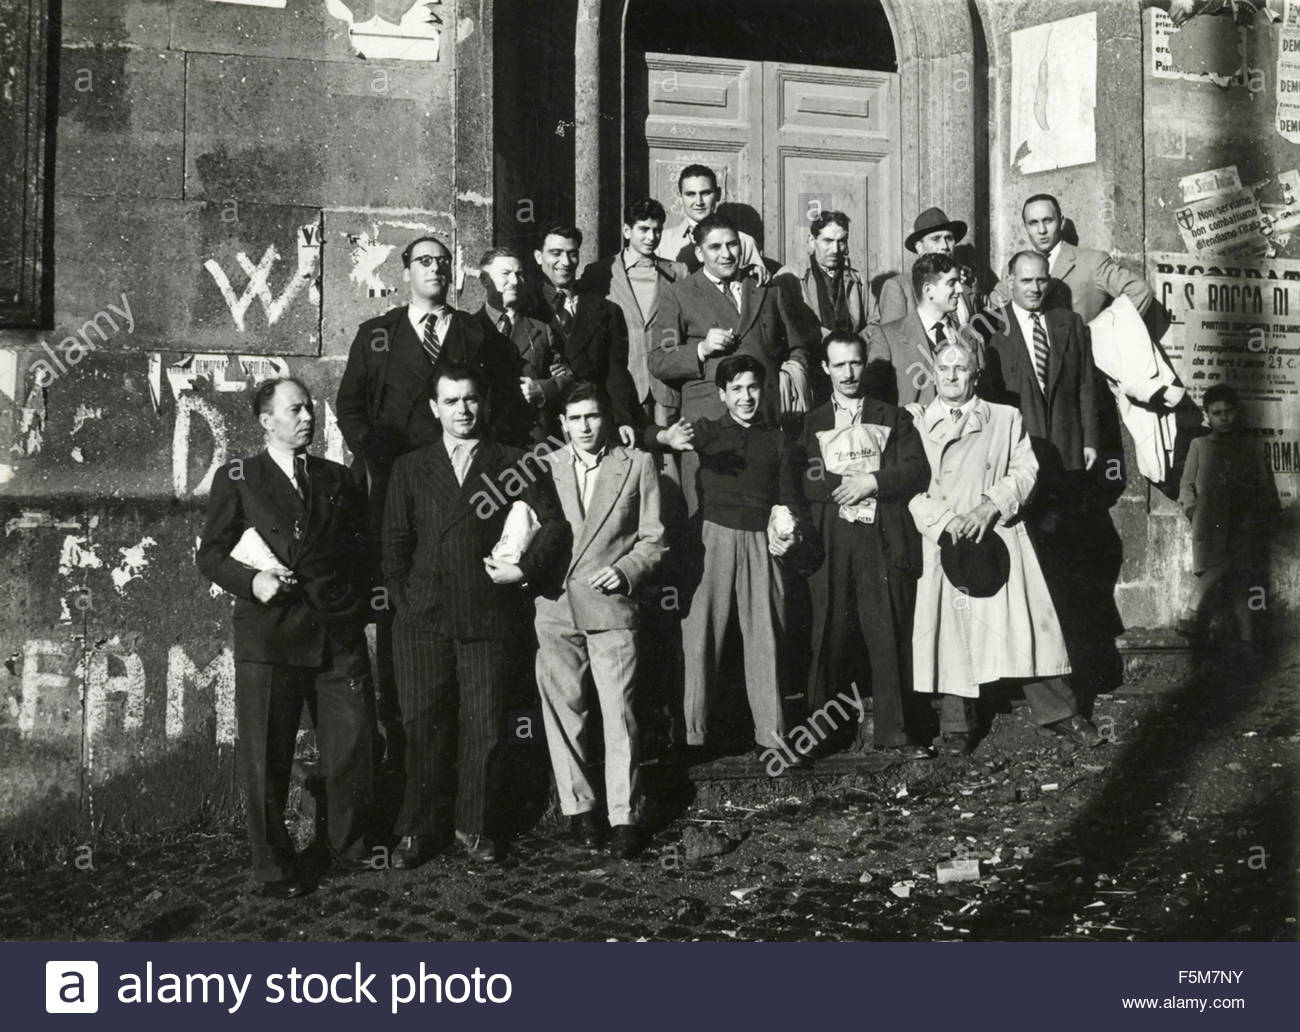 A large group next to walls and defaced posters, Italy - Stock Image